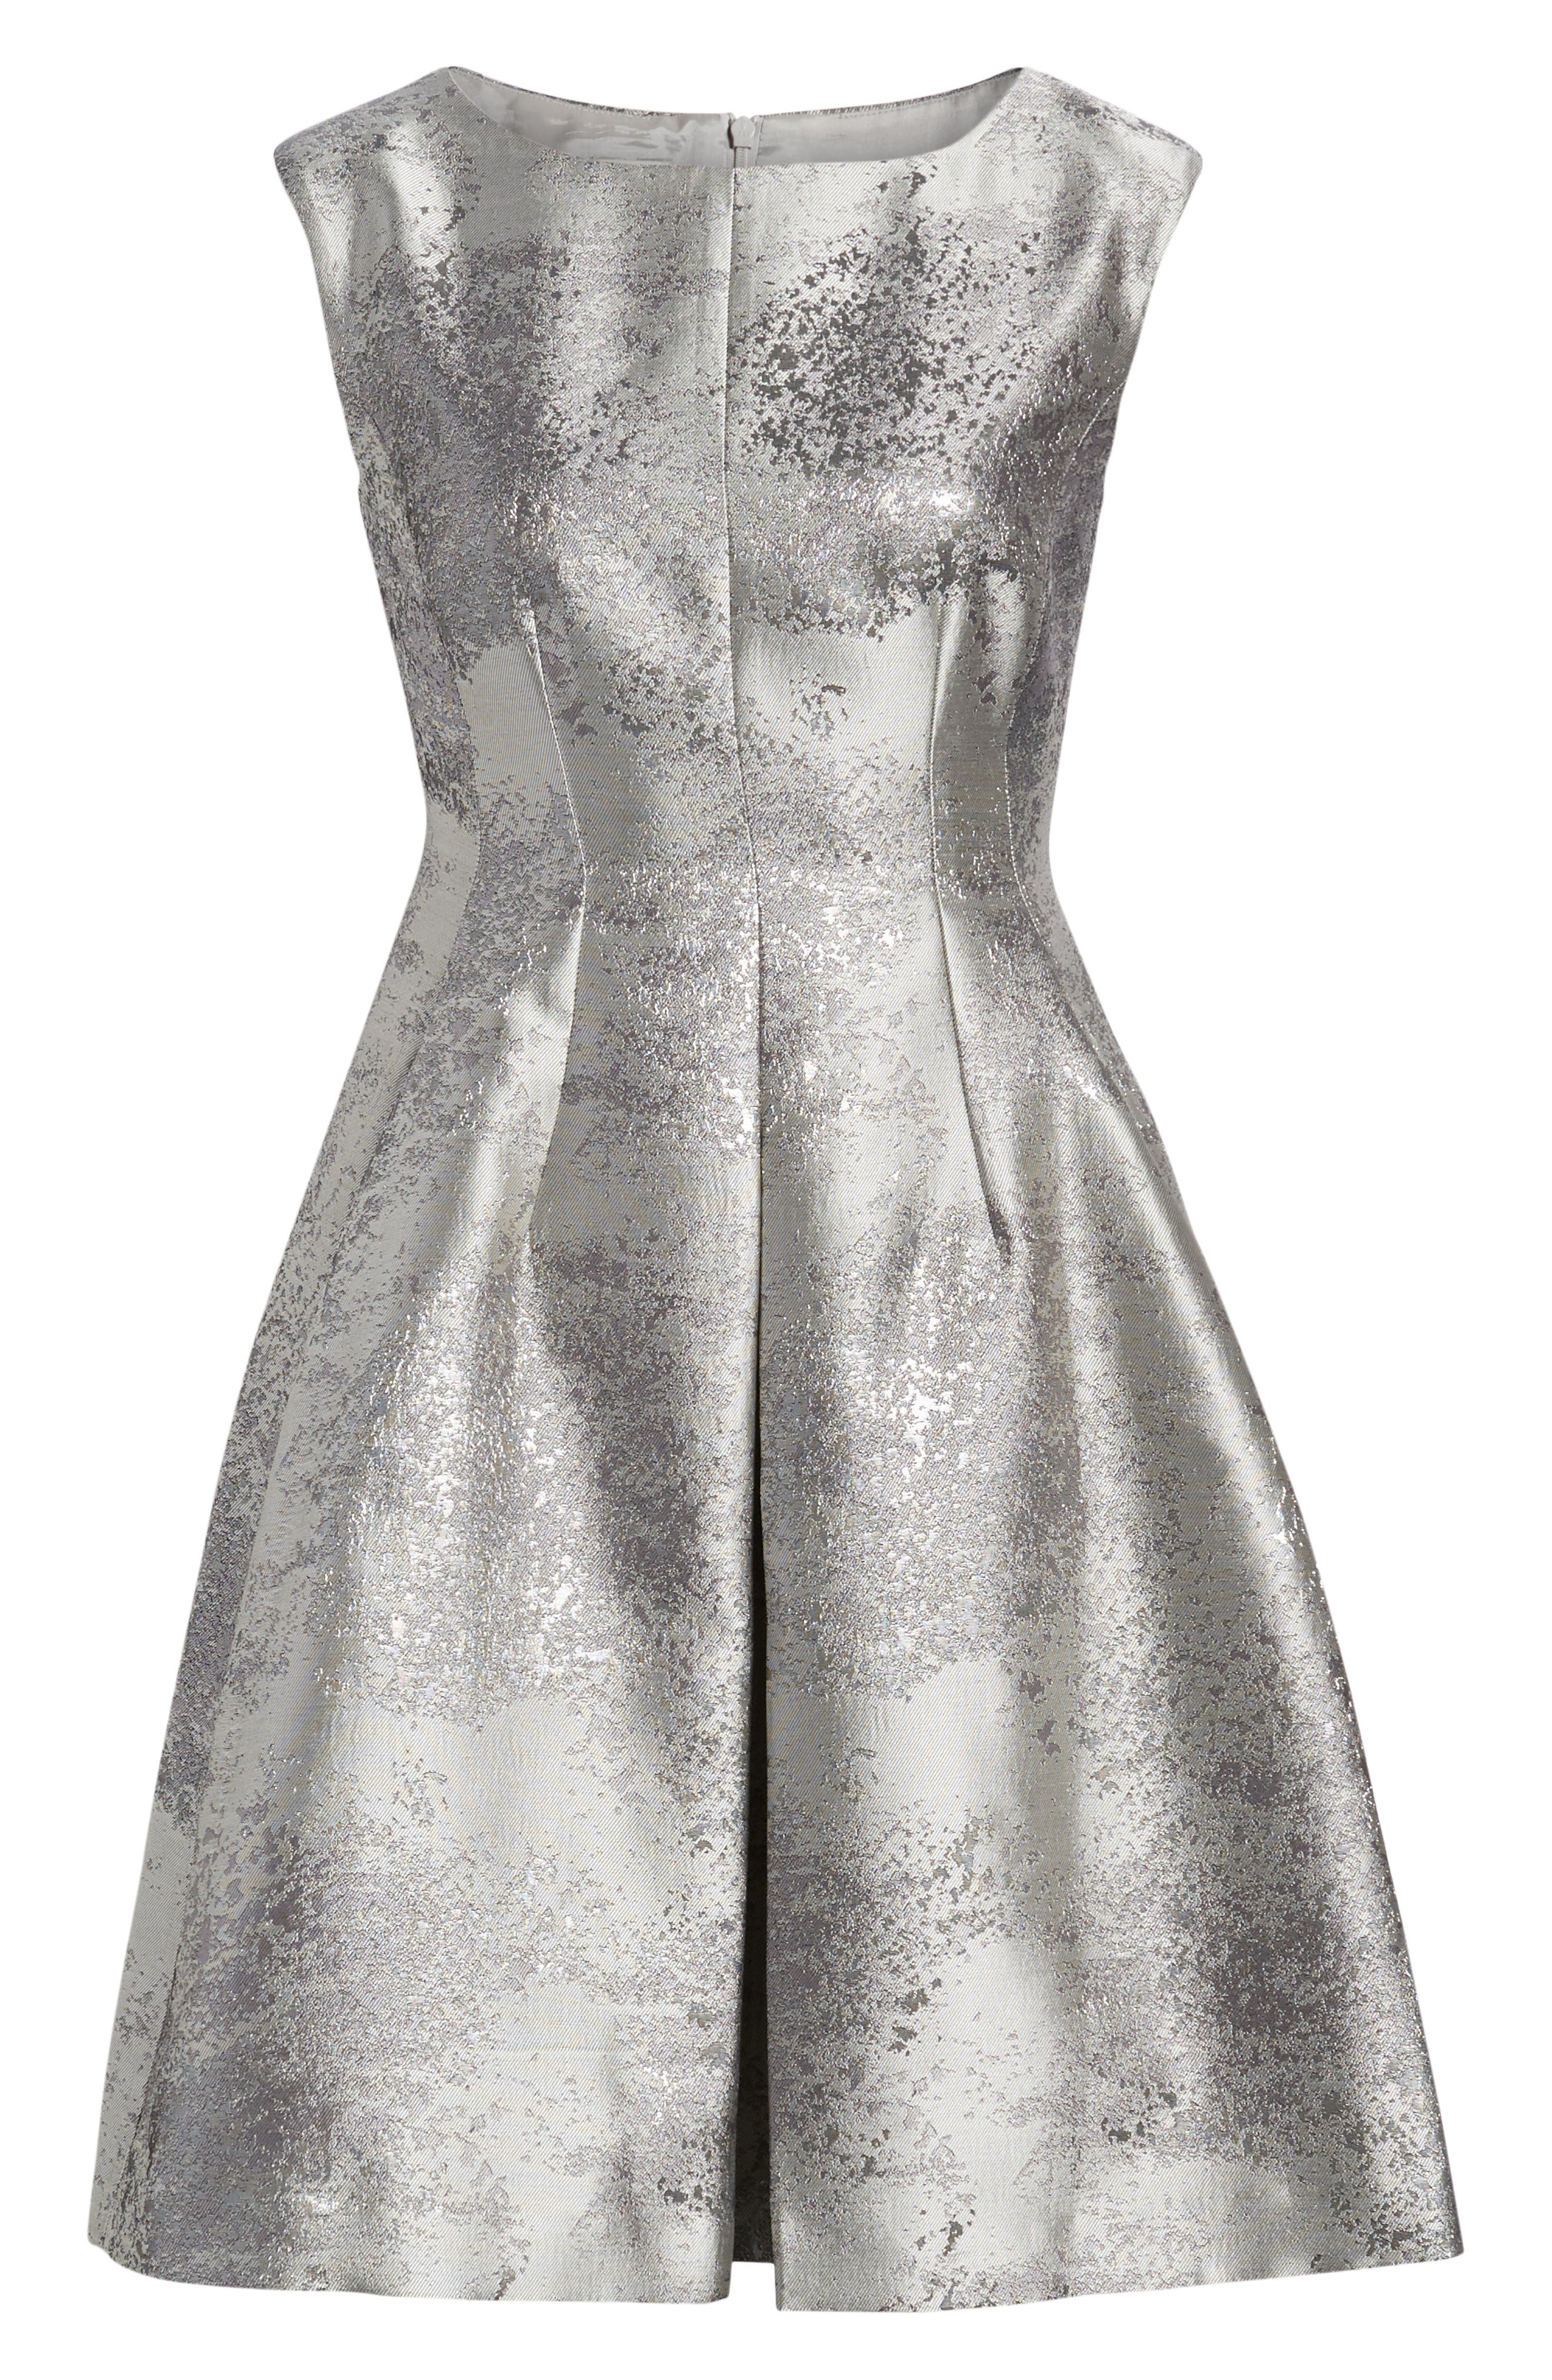 ANNE KLEIN,                             Satin Jacquard Fit & Flare Dress,                             Alternate thumbnail 6, color,                             SILVER COMBO